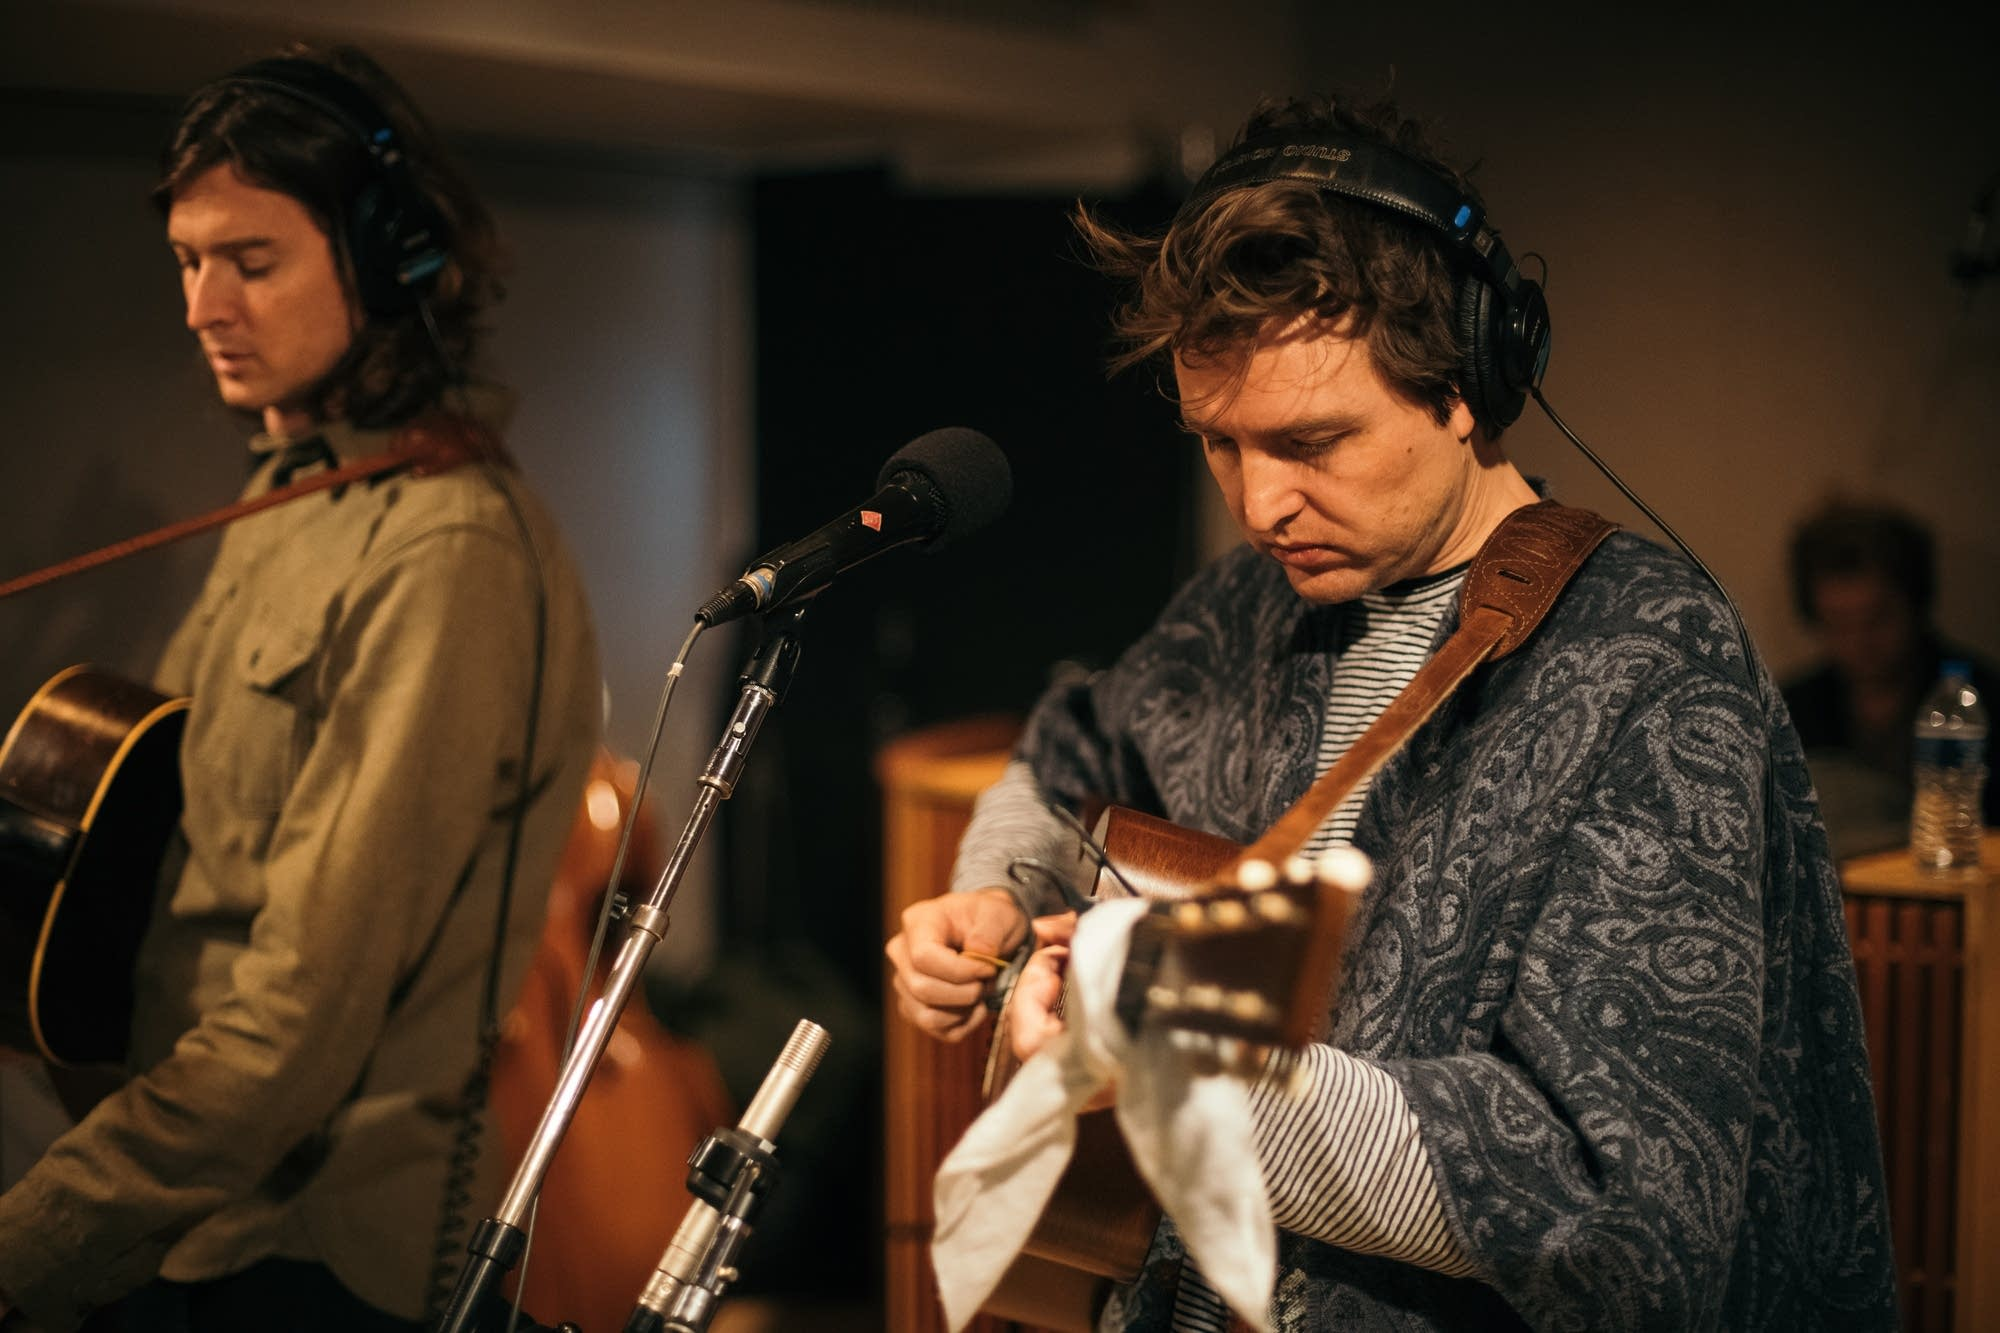 The Milk Carton Kids perform at Radio Heartland